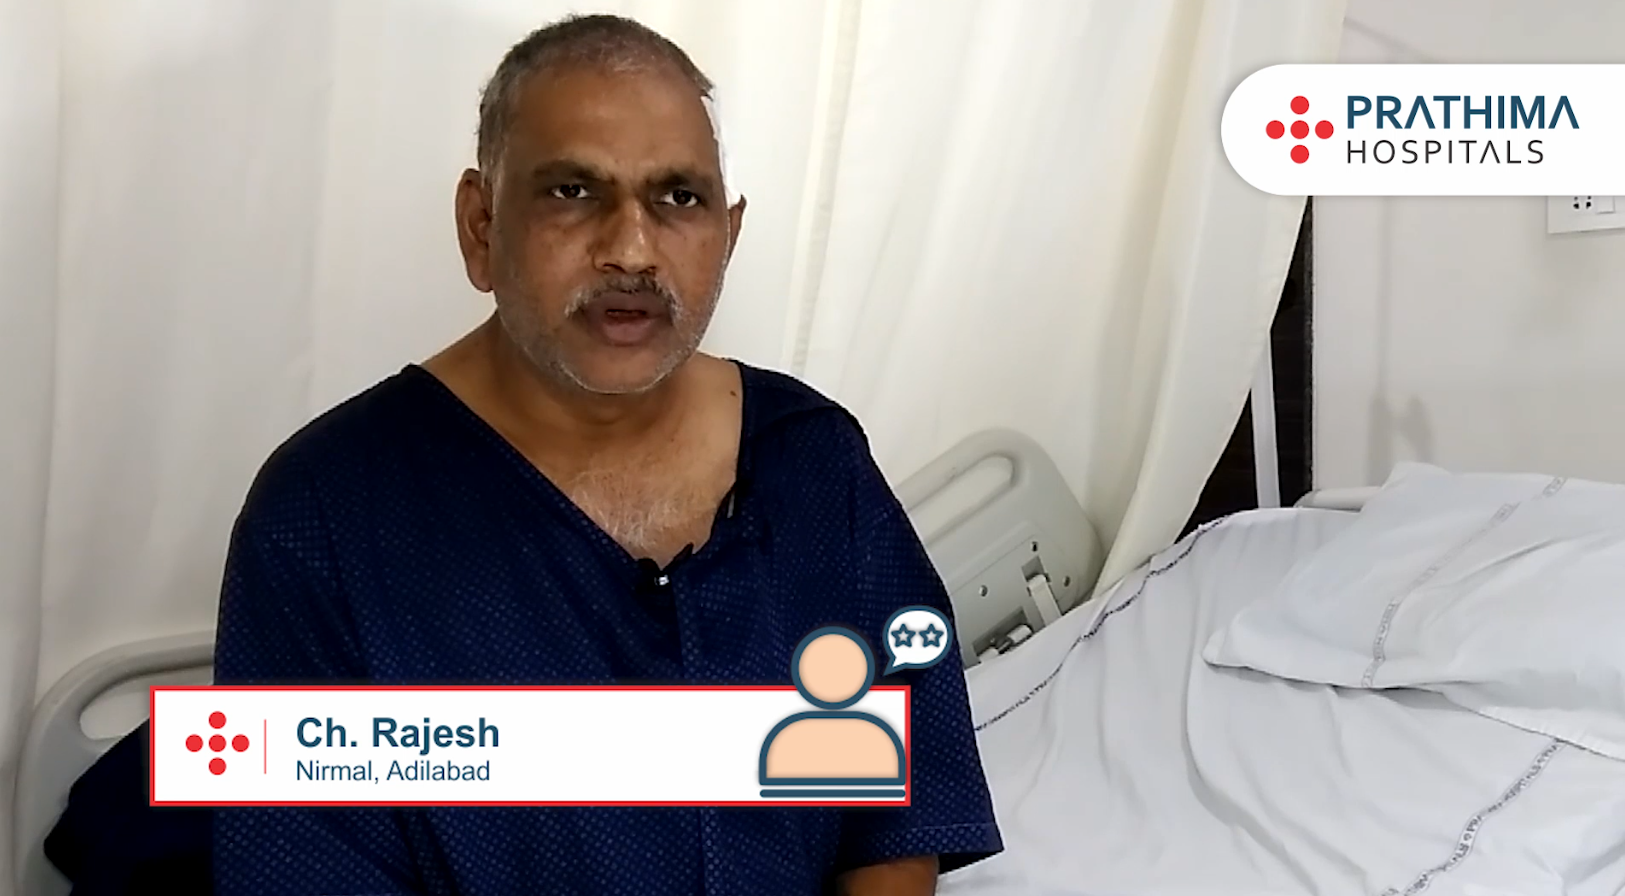 Prathima Hospitals | Patient Testimonial | Ch. Rajesh, Nirmal, Adilabad District